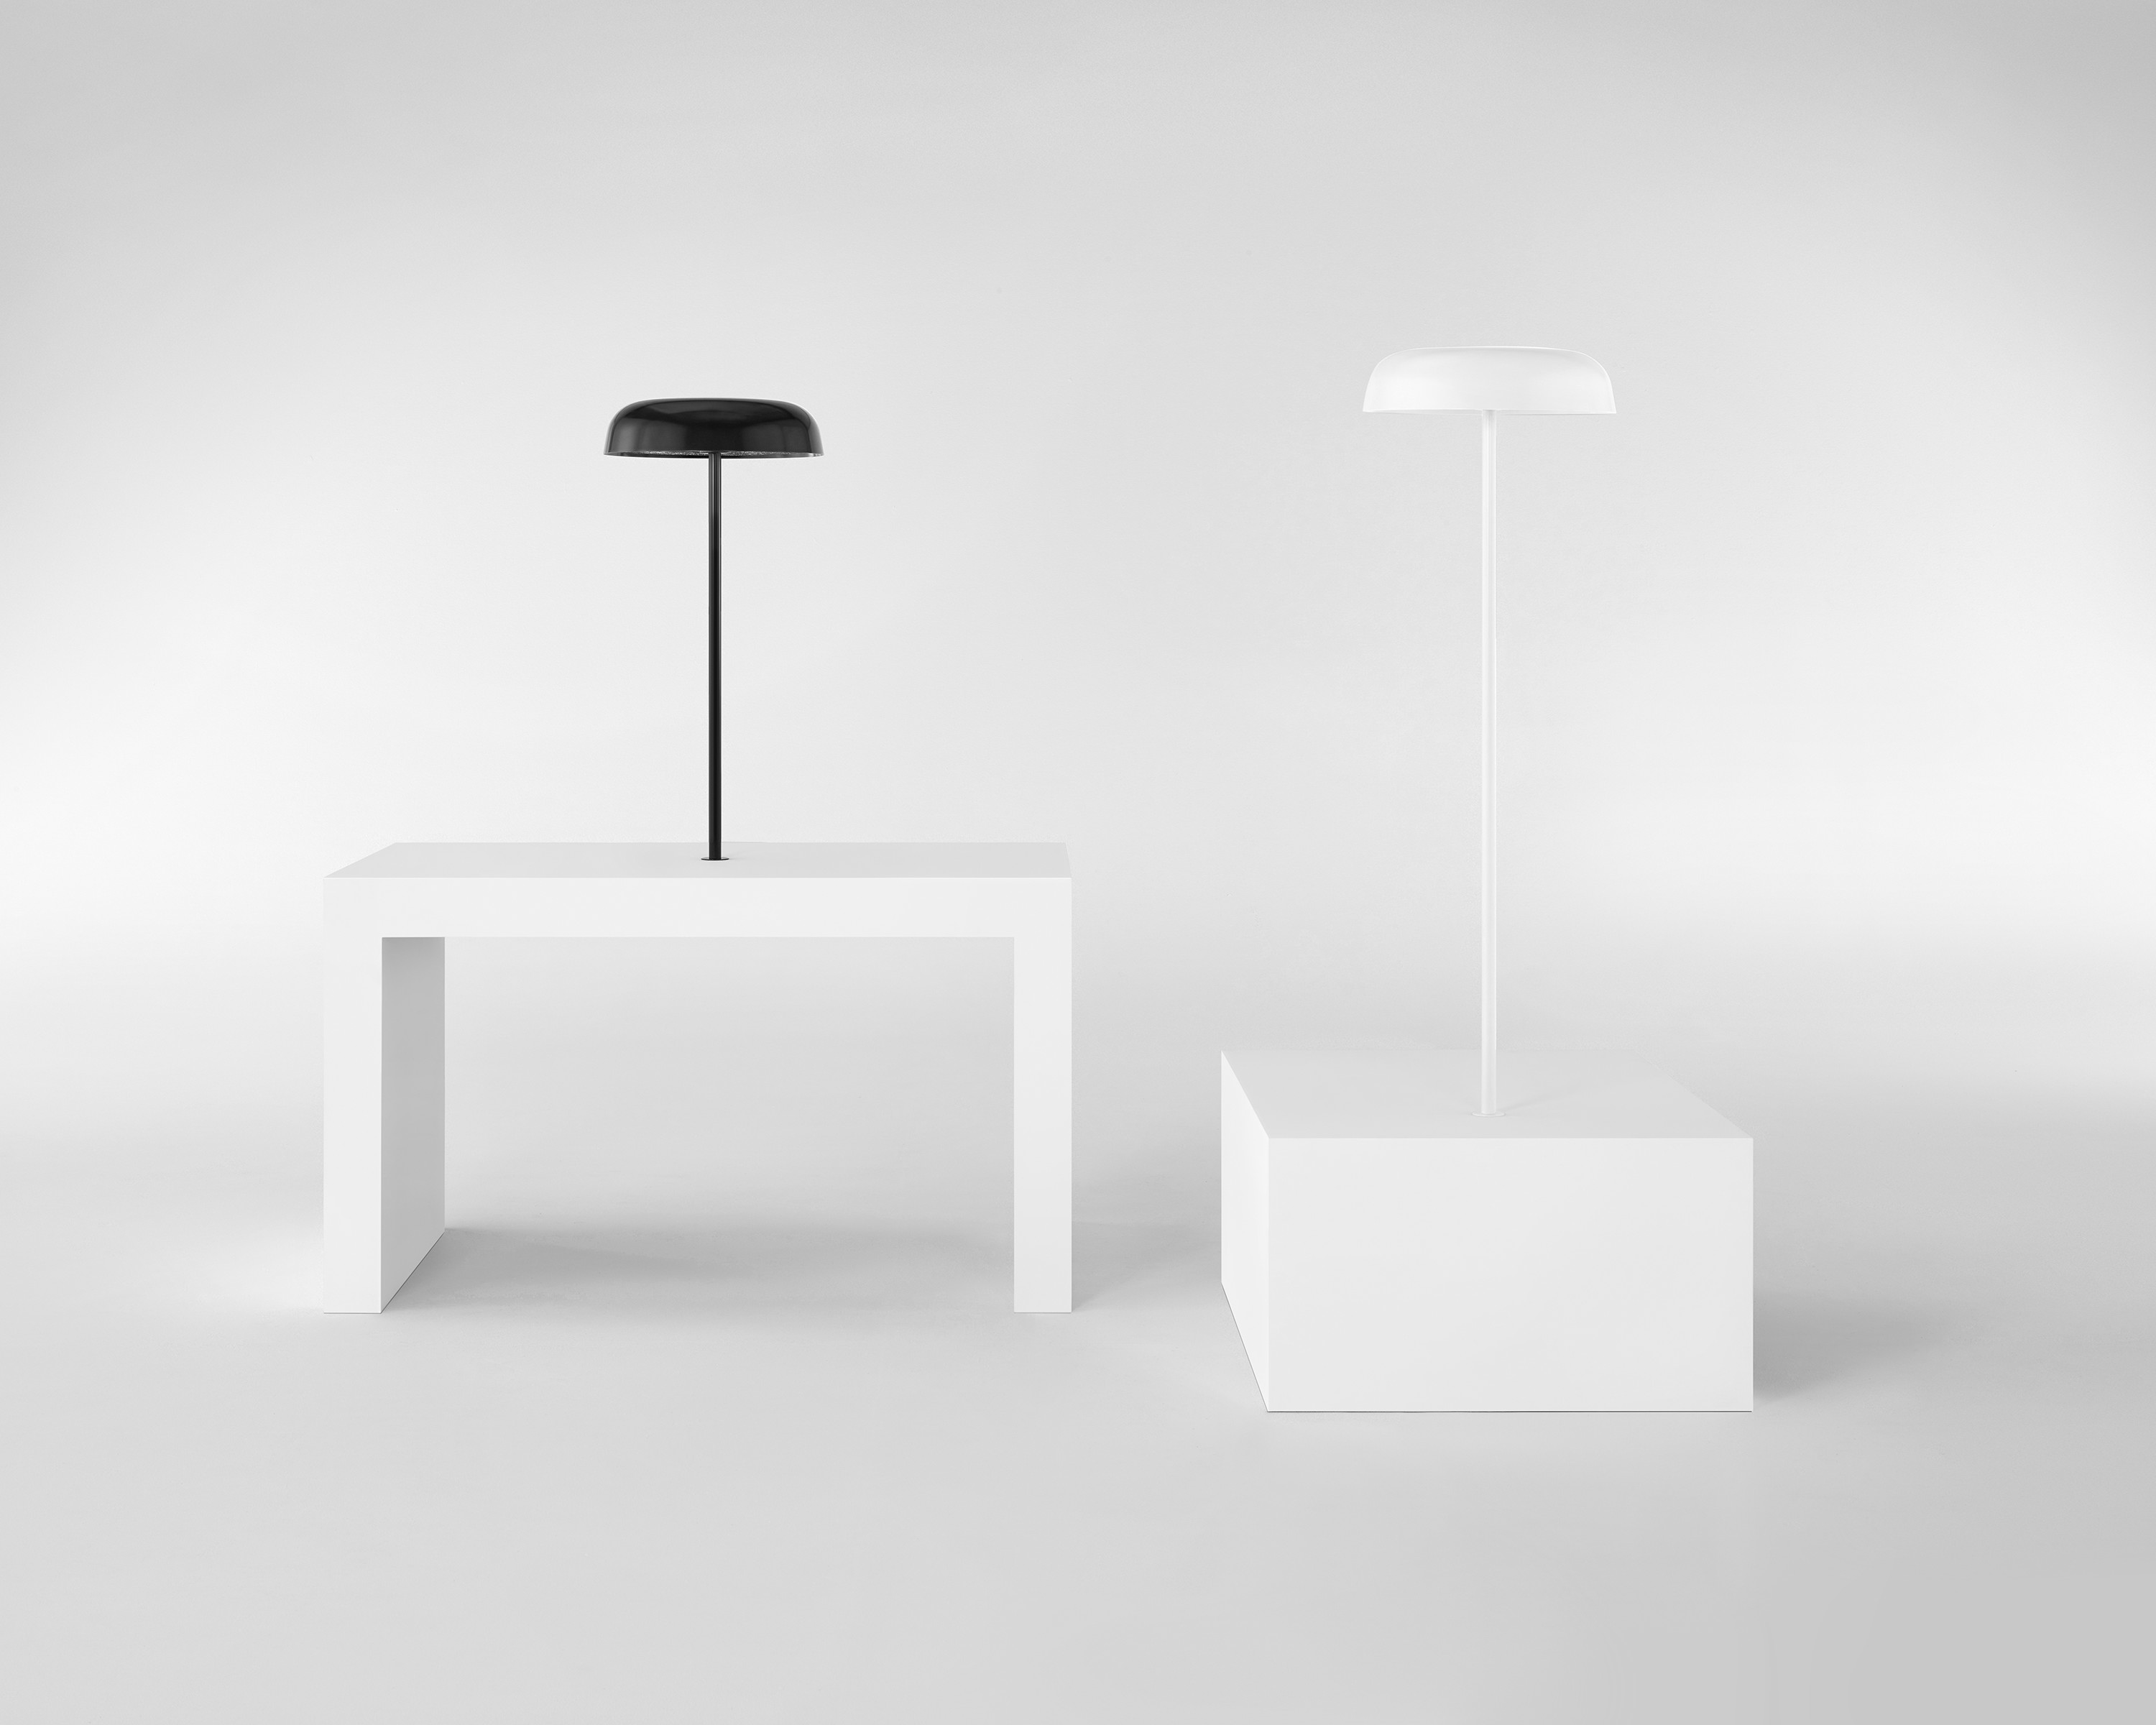 Ode Lamps by Sam Hecht & Kim Colin for Herman Miller